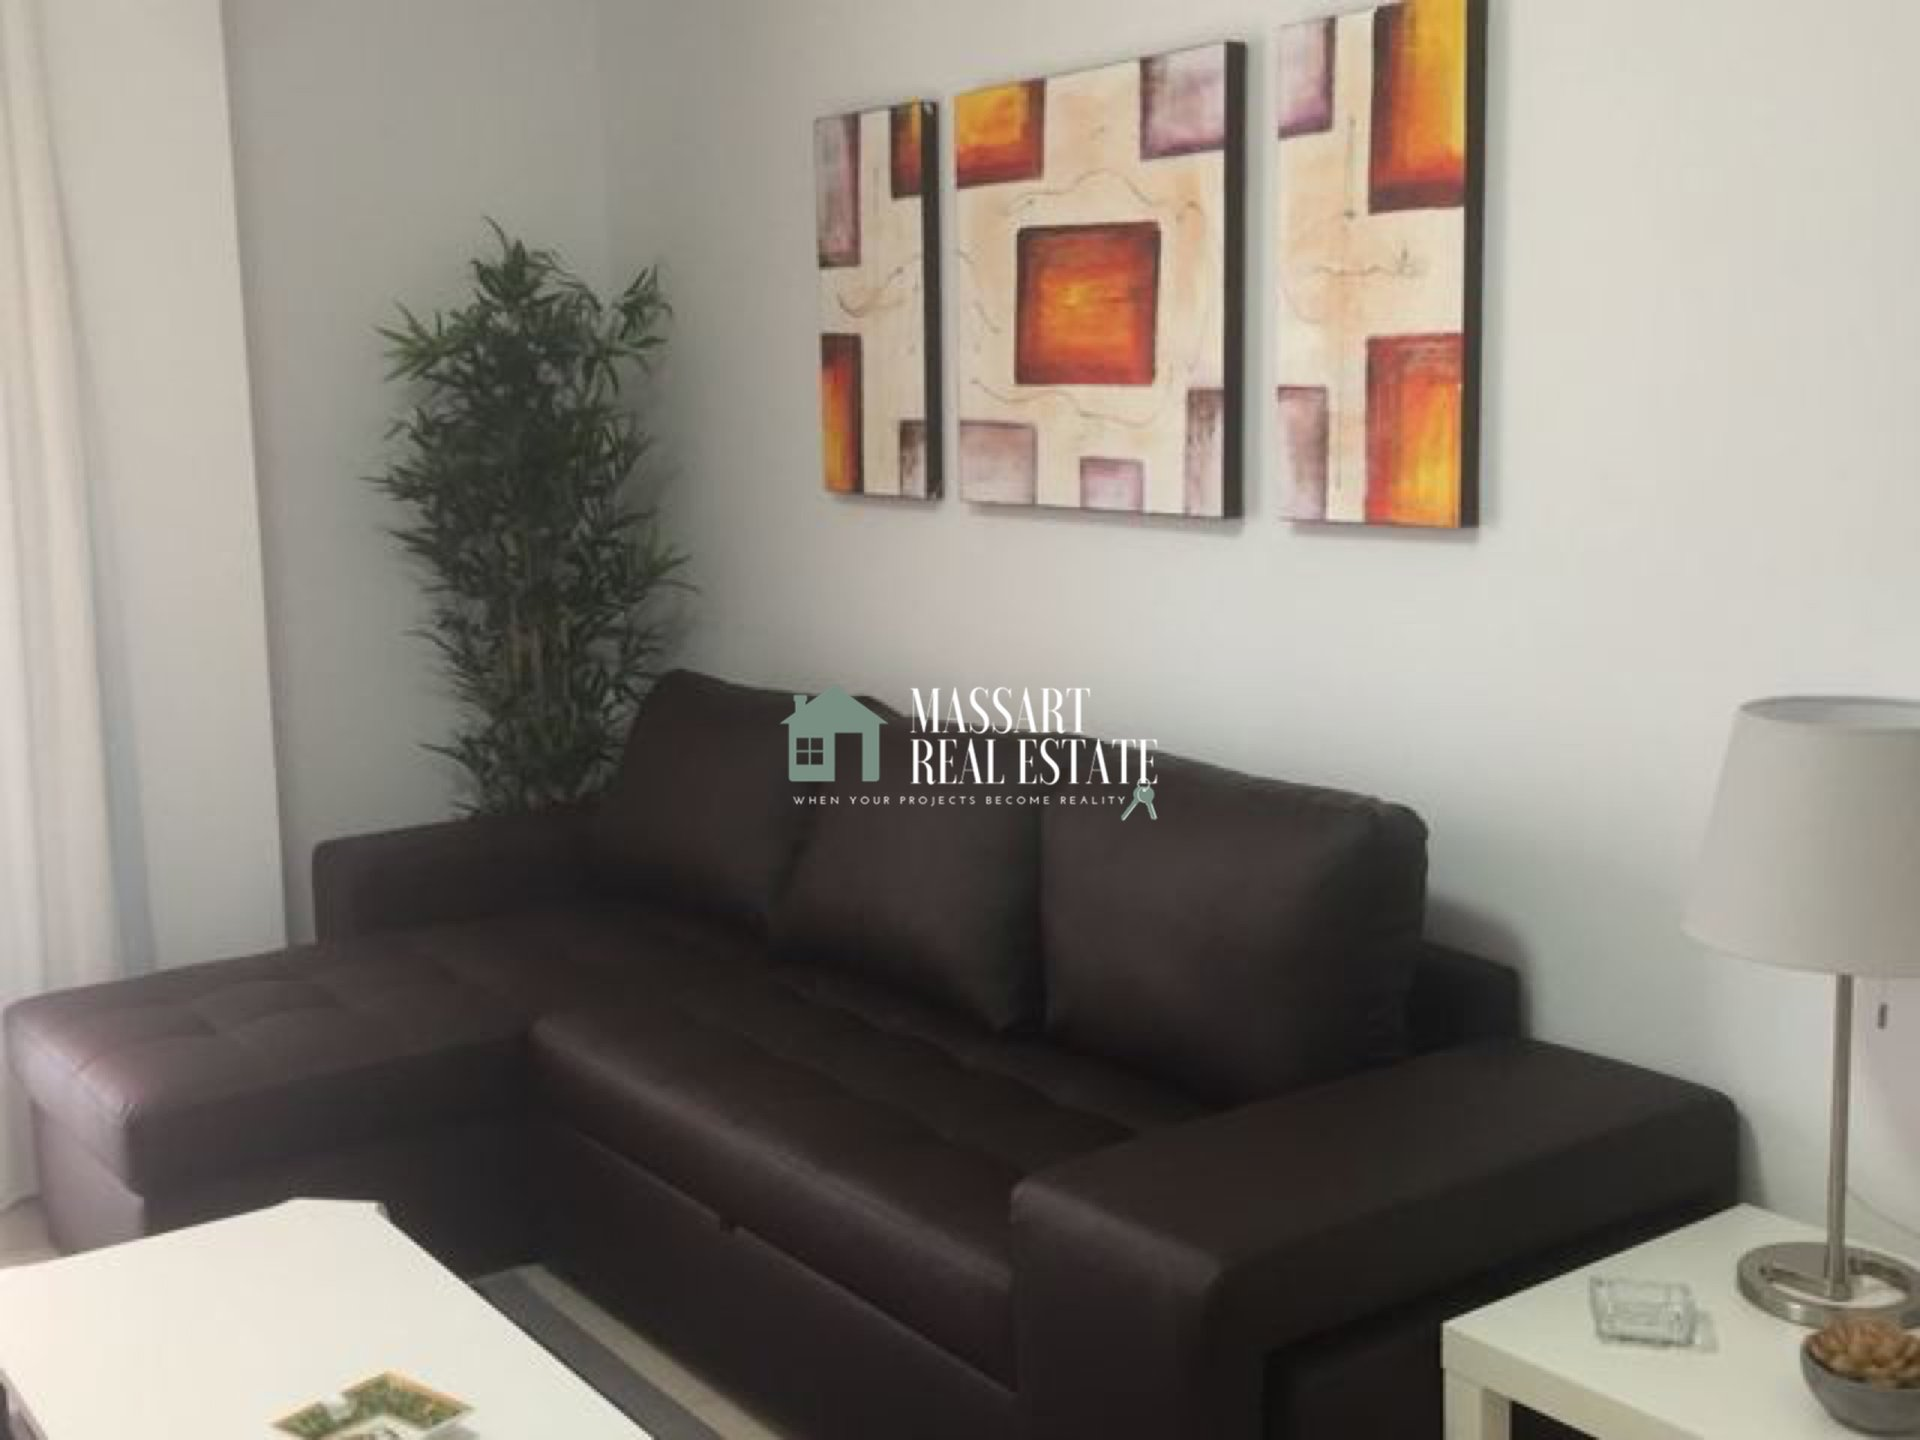 For rent in the coastal area of Alcalá (Guia de Isora), furnished apartment of about 60 m2 with a modern style.